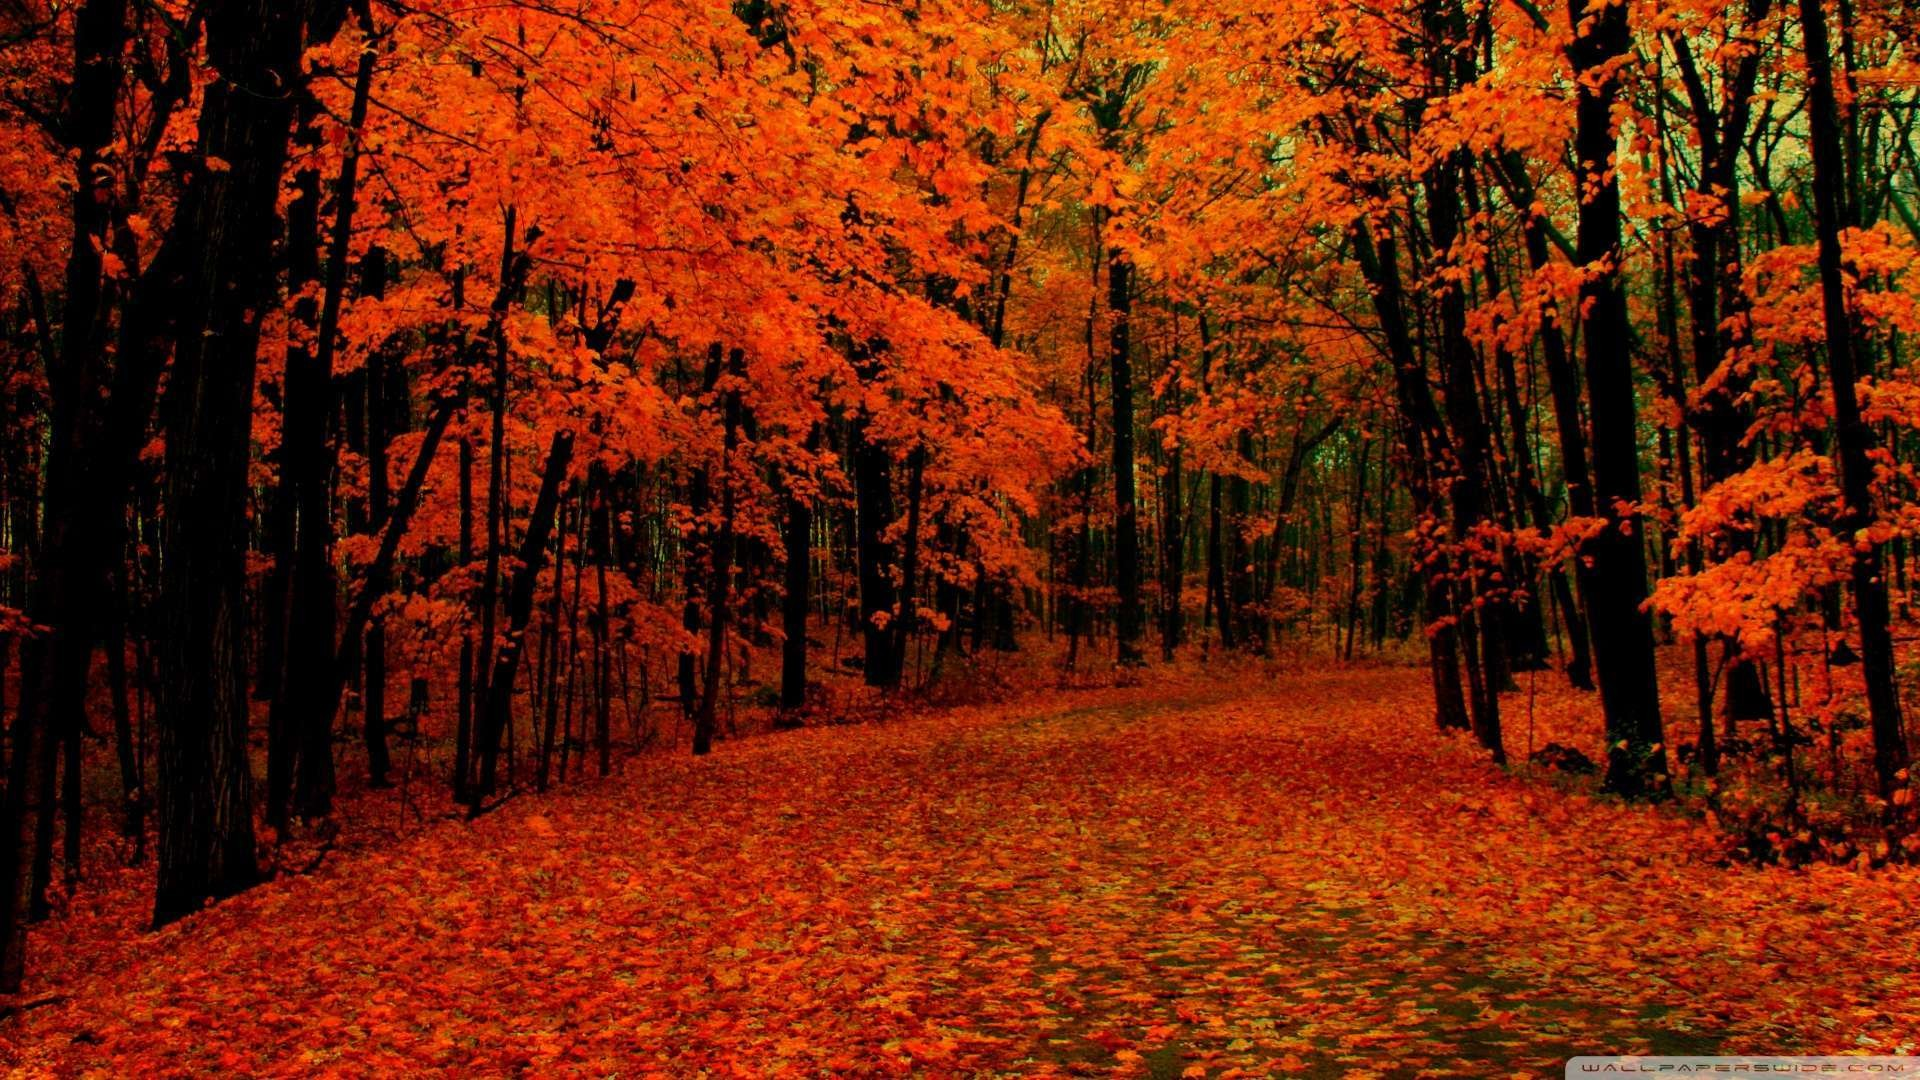 Fall wallpaper ·① Download free full HD backgrounds for ...